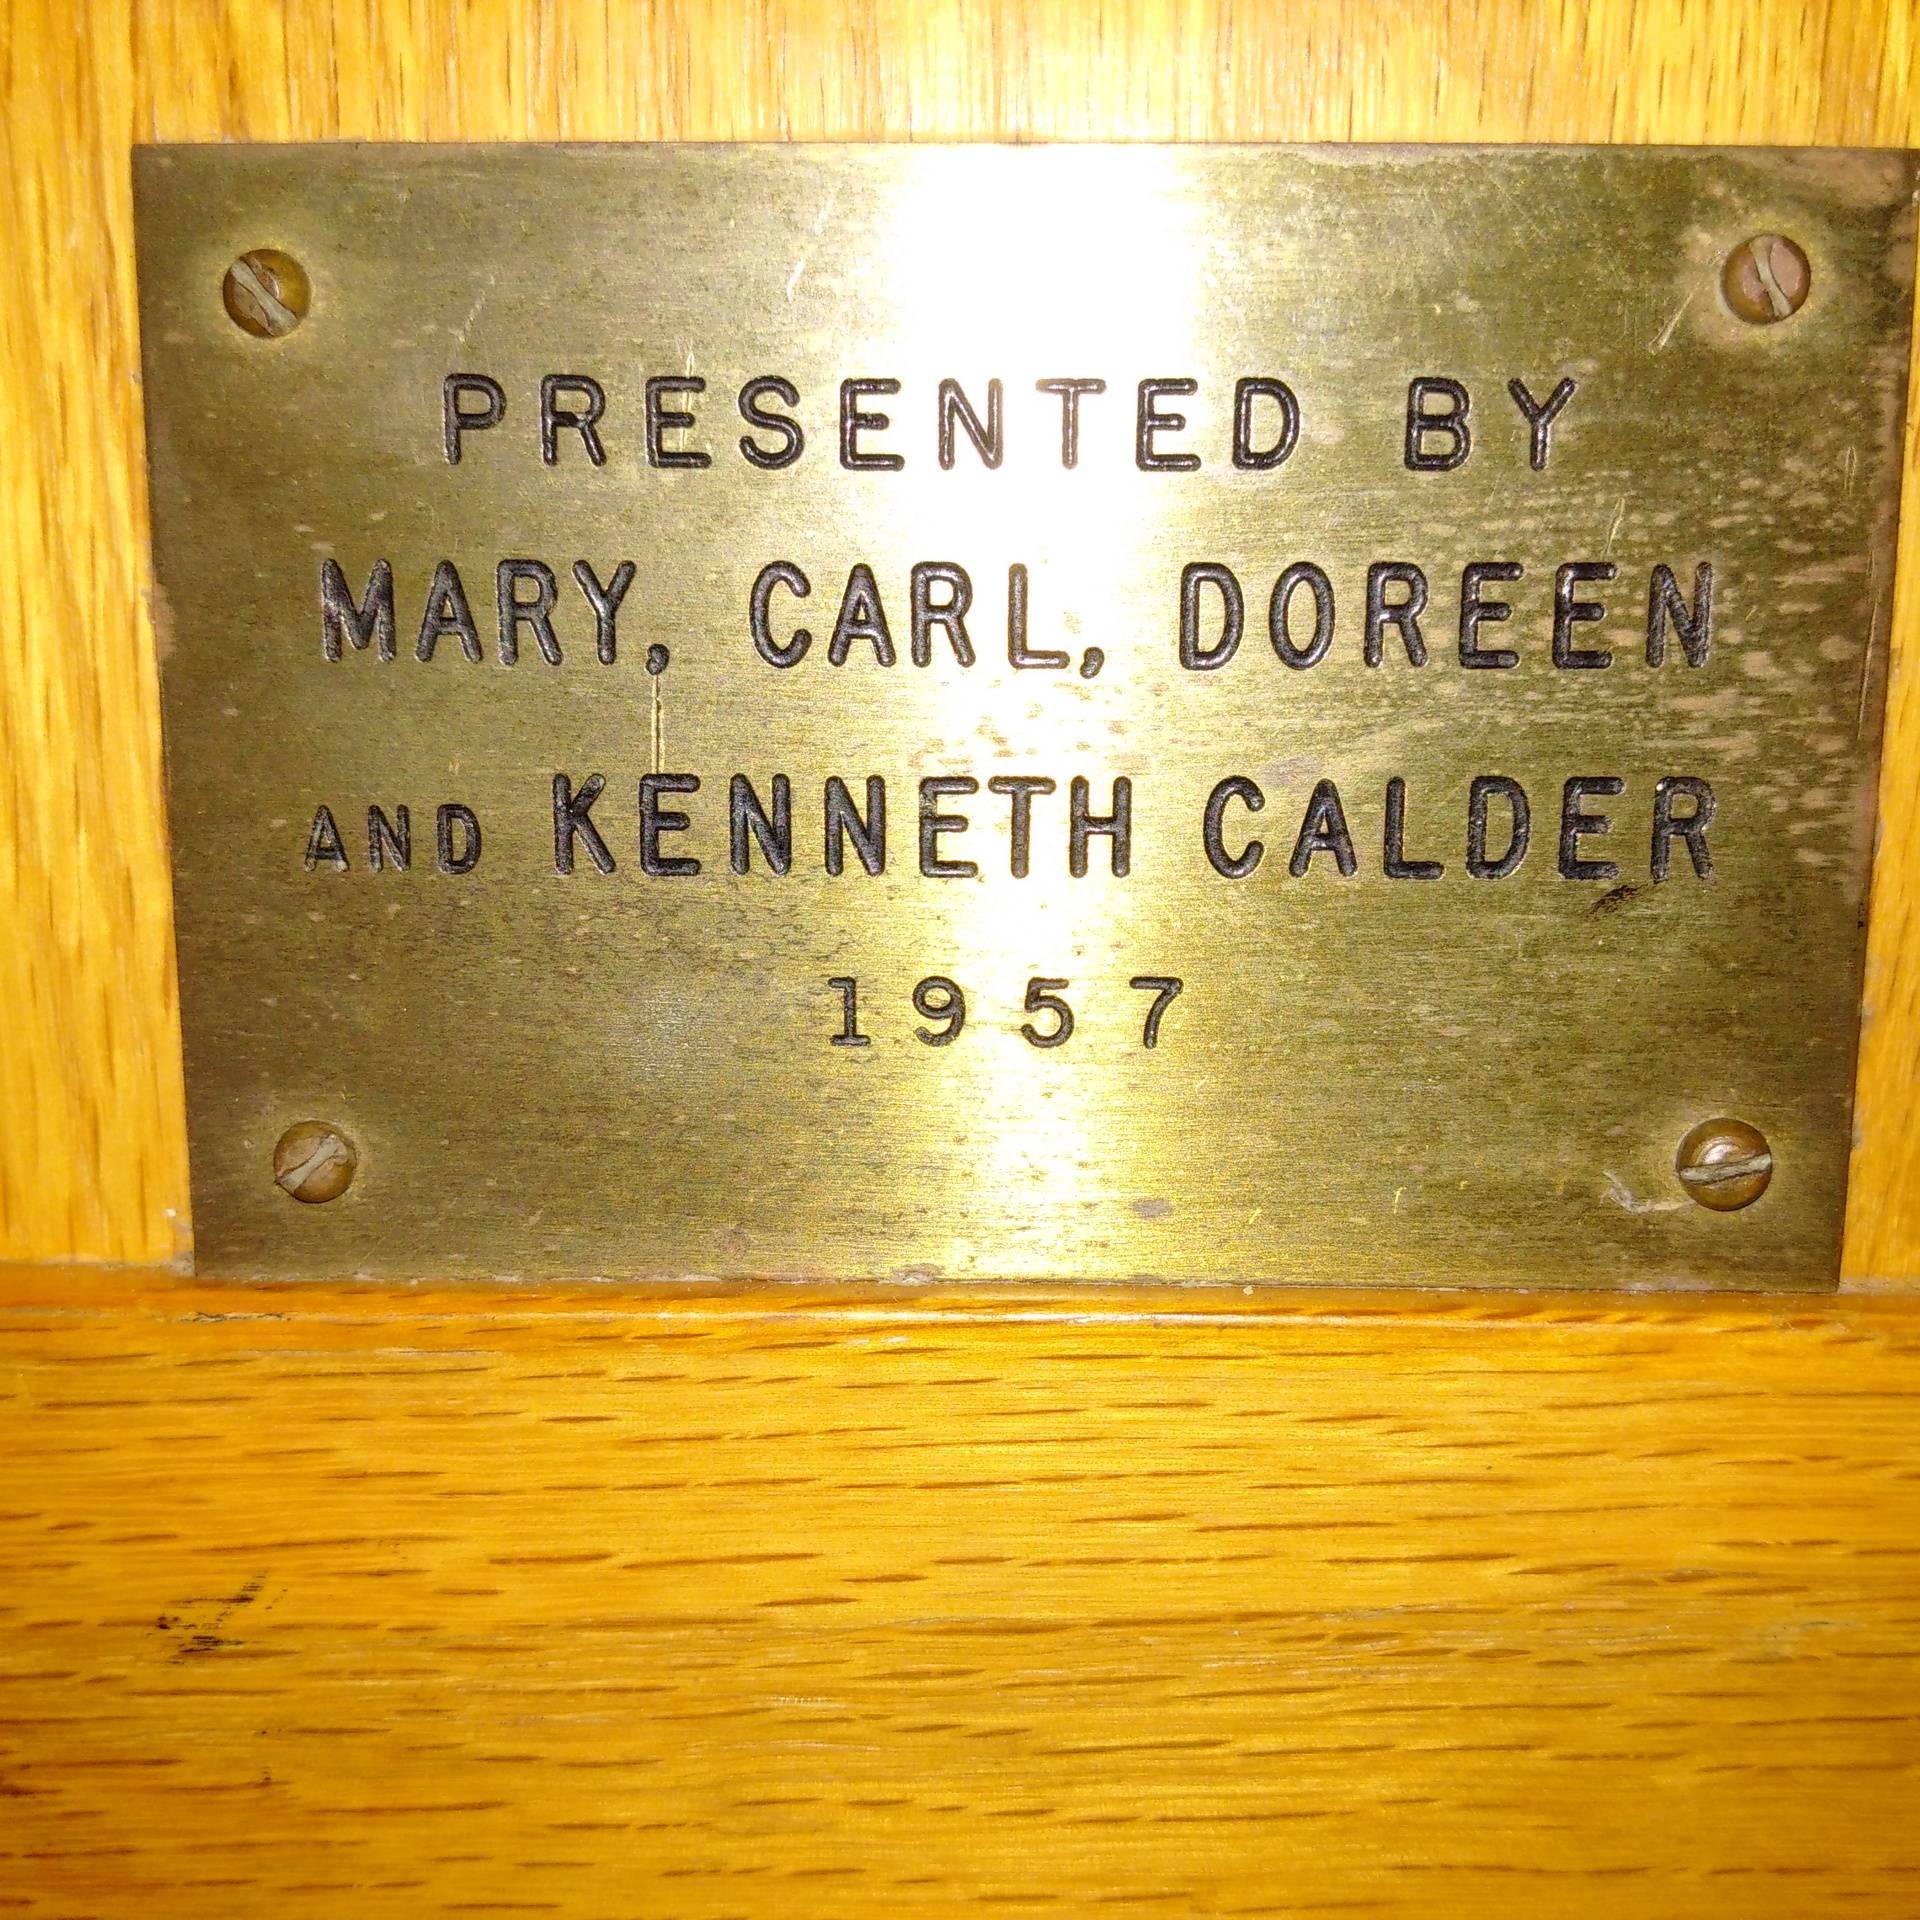 Mary, Carl, Doreen and Kenneth Calder 1957